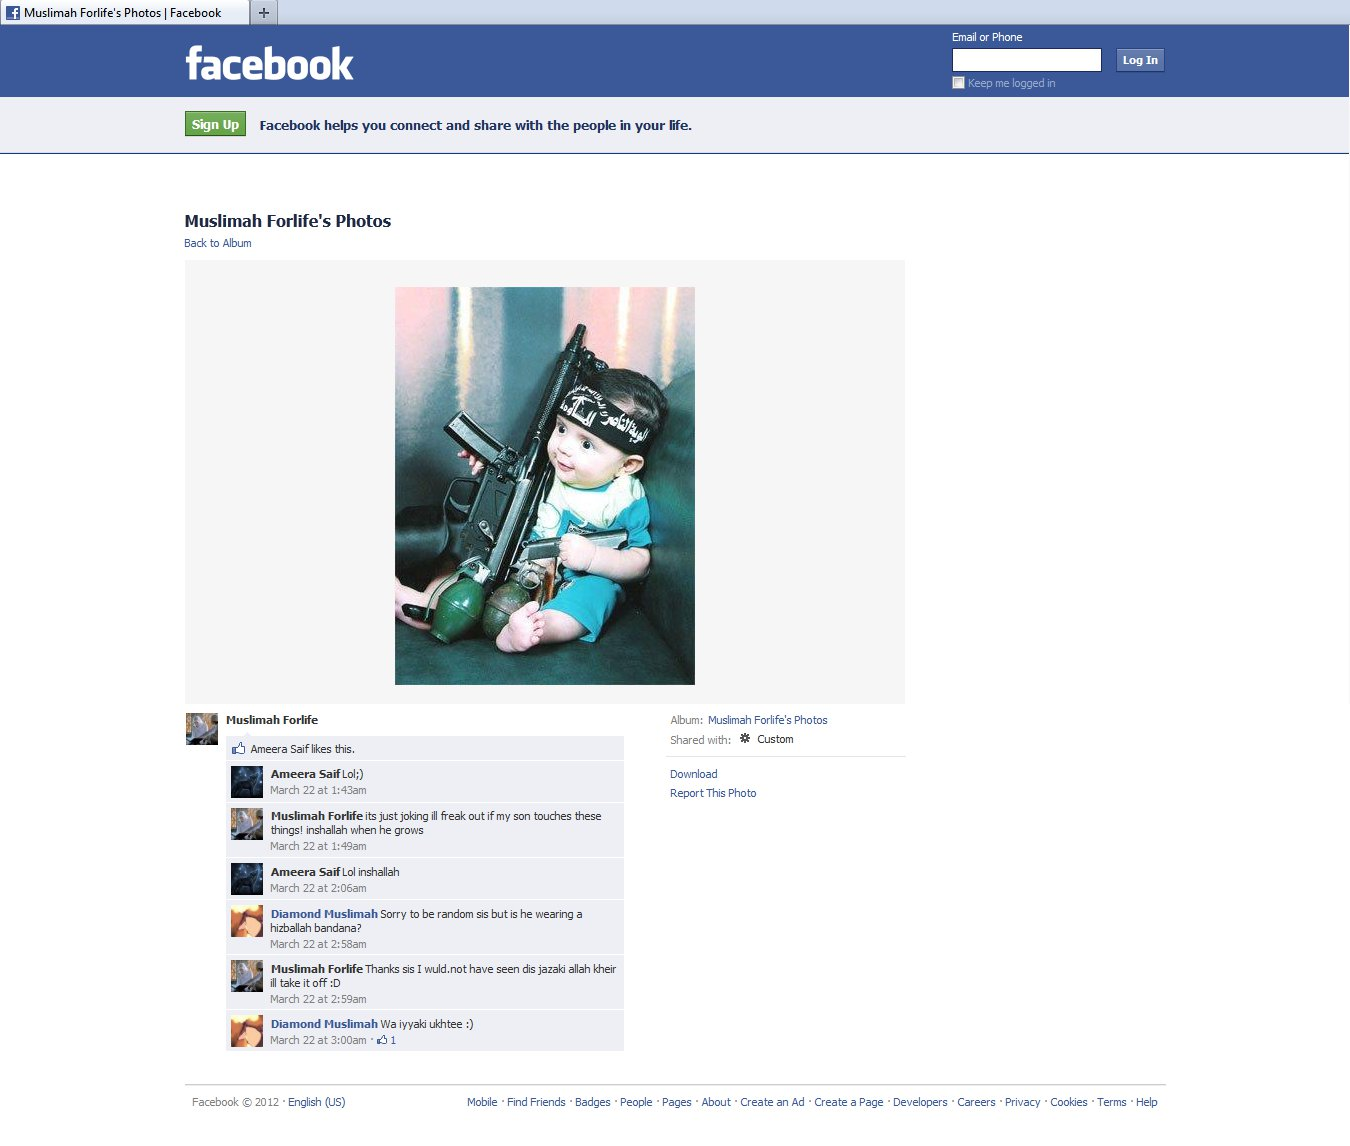 Muslimah Forlife baby jihadi Facebook screen capture - click for full size view